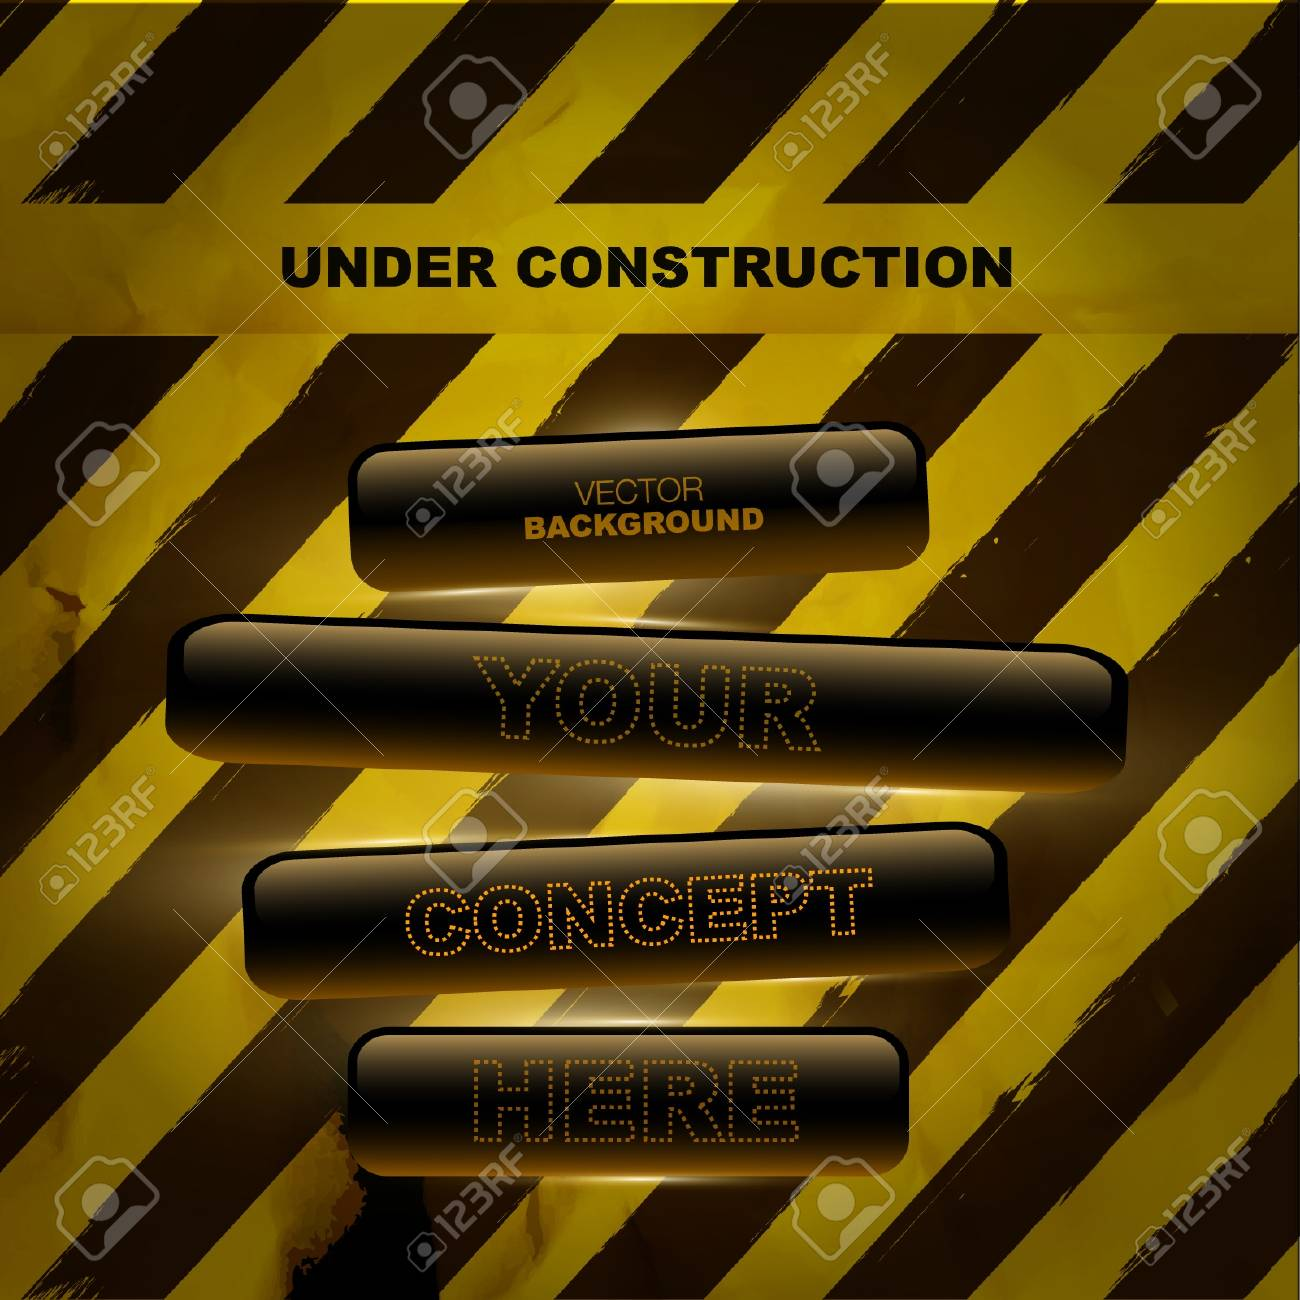 under construction background Stock Vector - 18296821